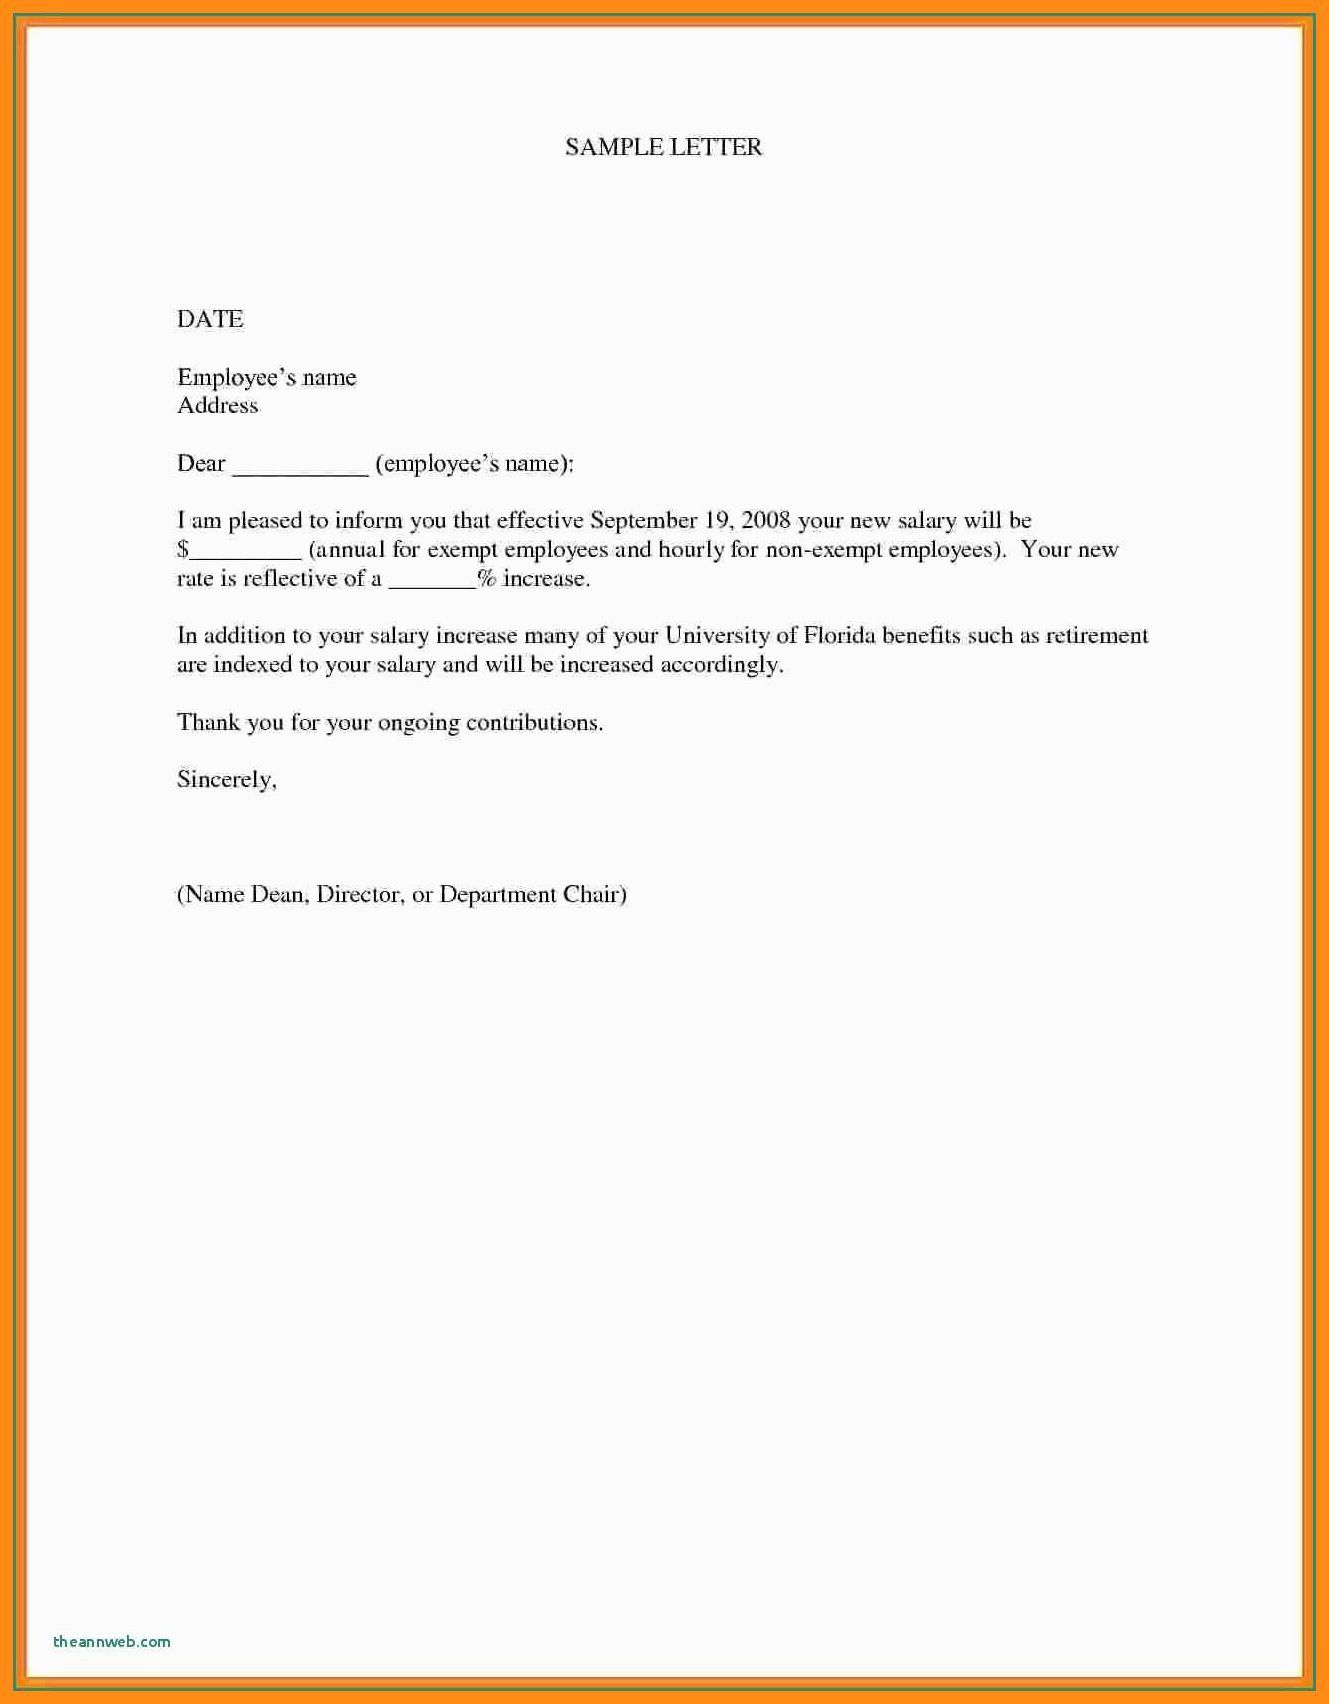 000 Marvelou Salary Increase Letter Template Design  From Employer To Employee Australia No ForFull